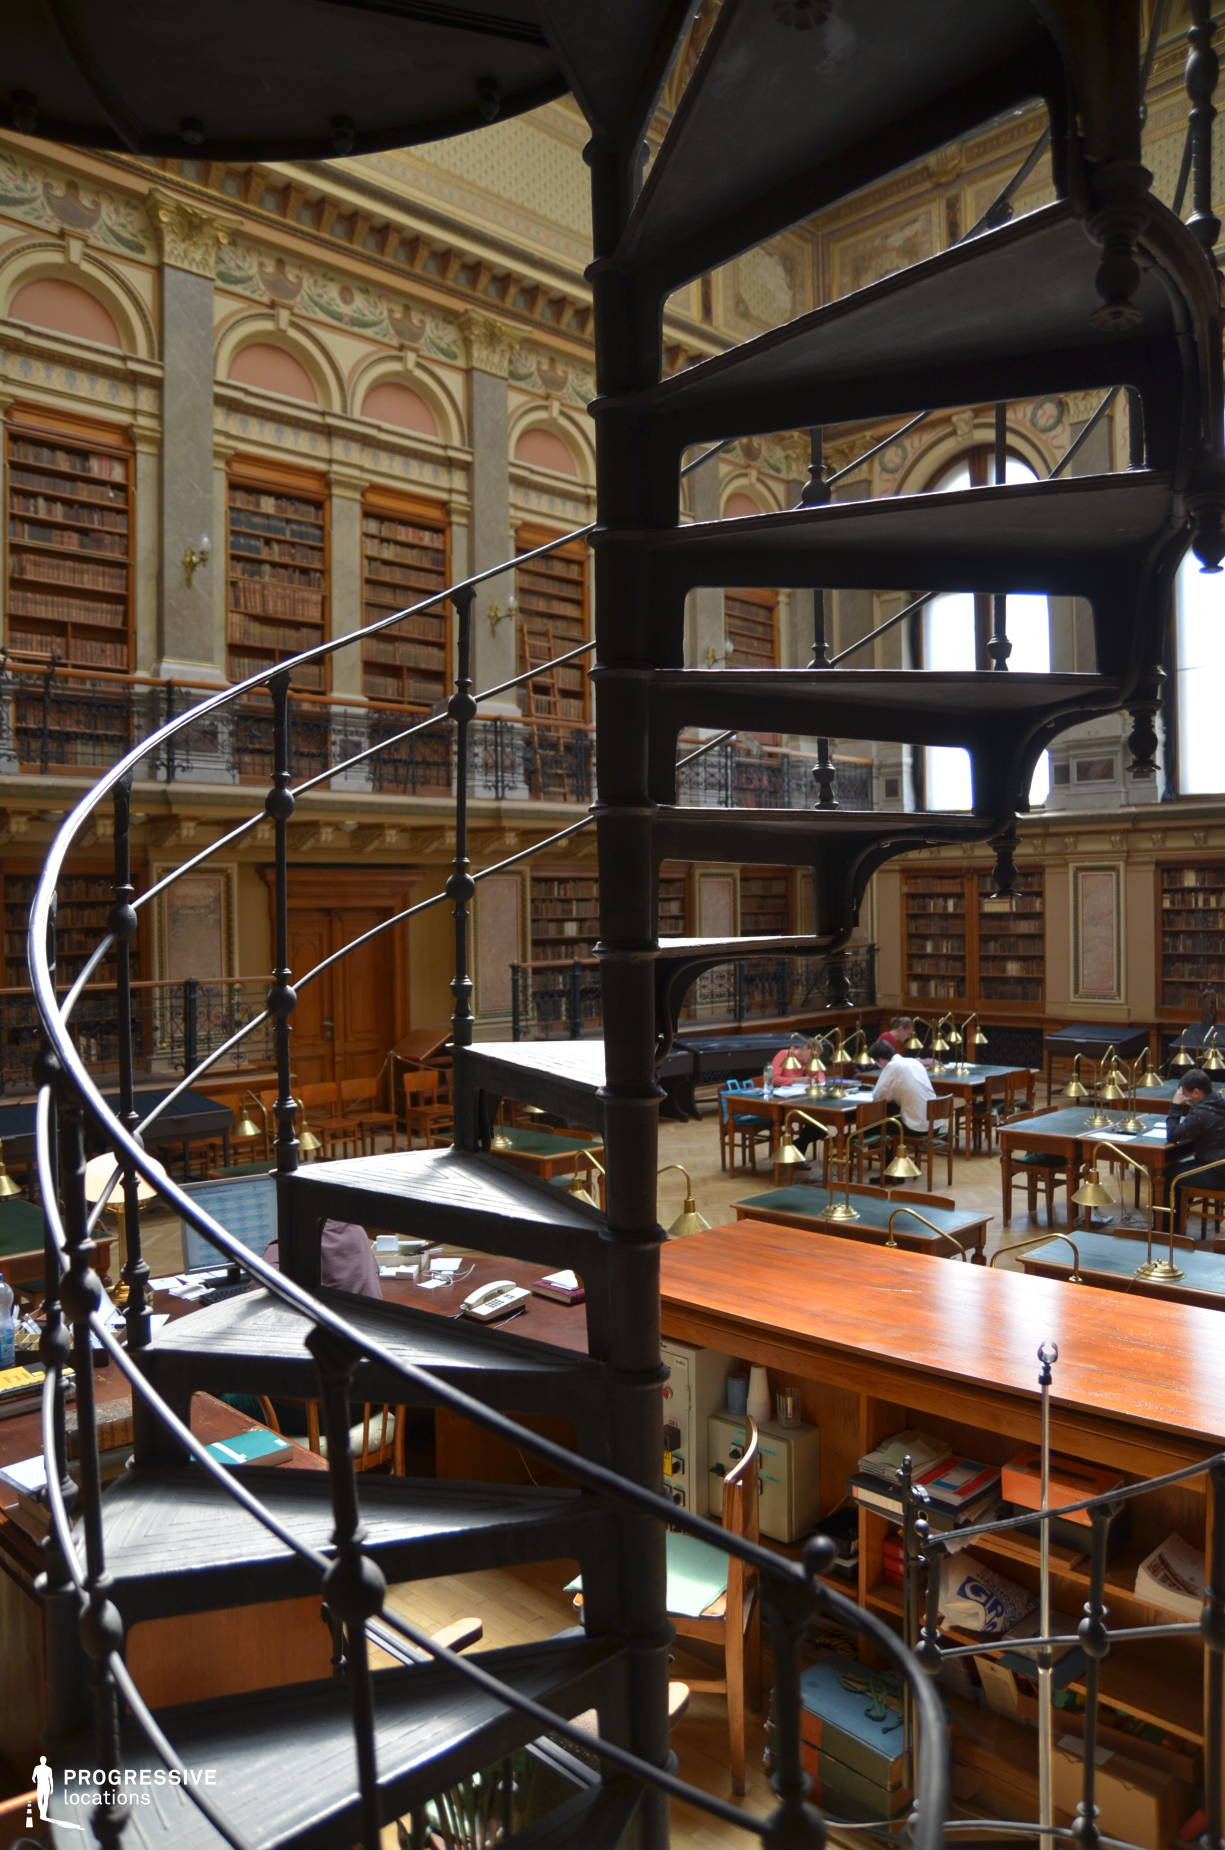 Locations in Hungary: Winding Staircase, University Library